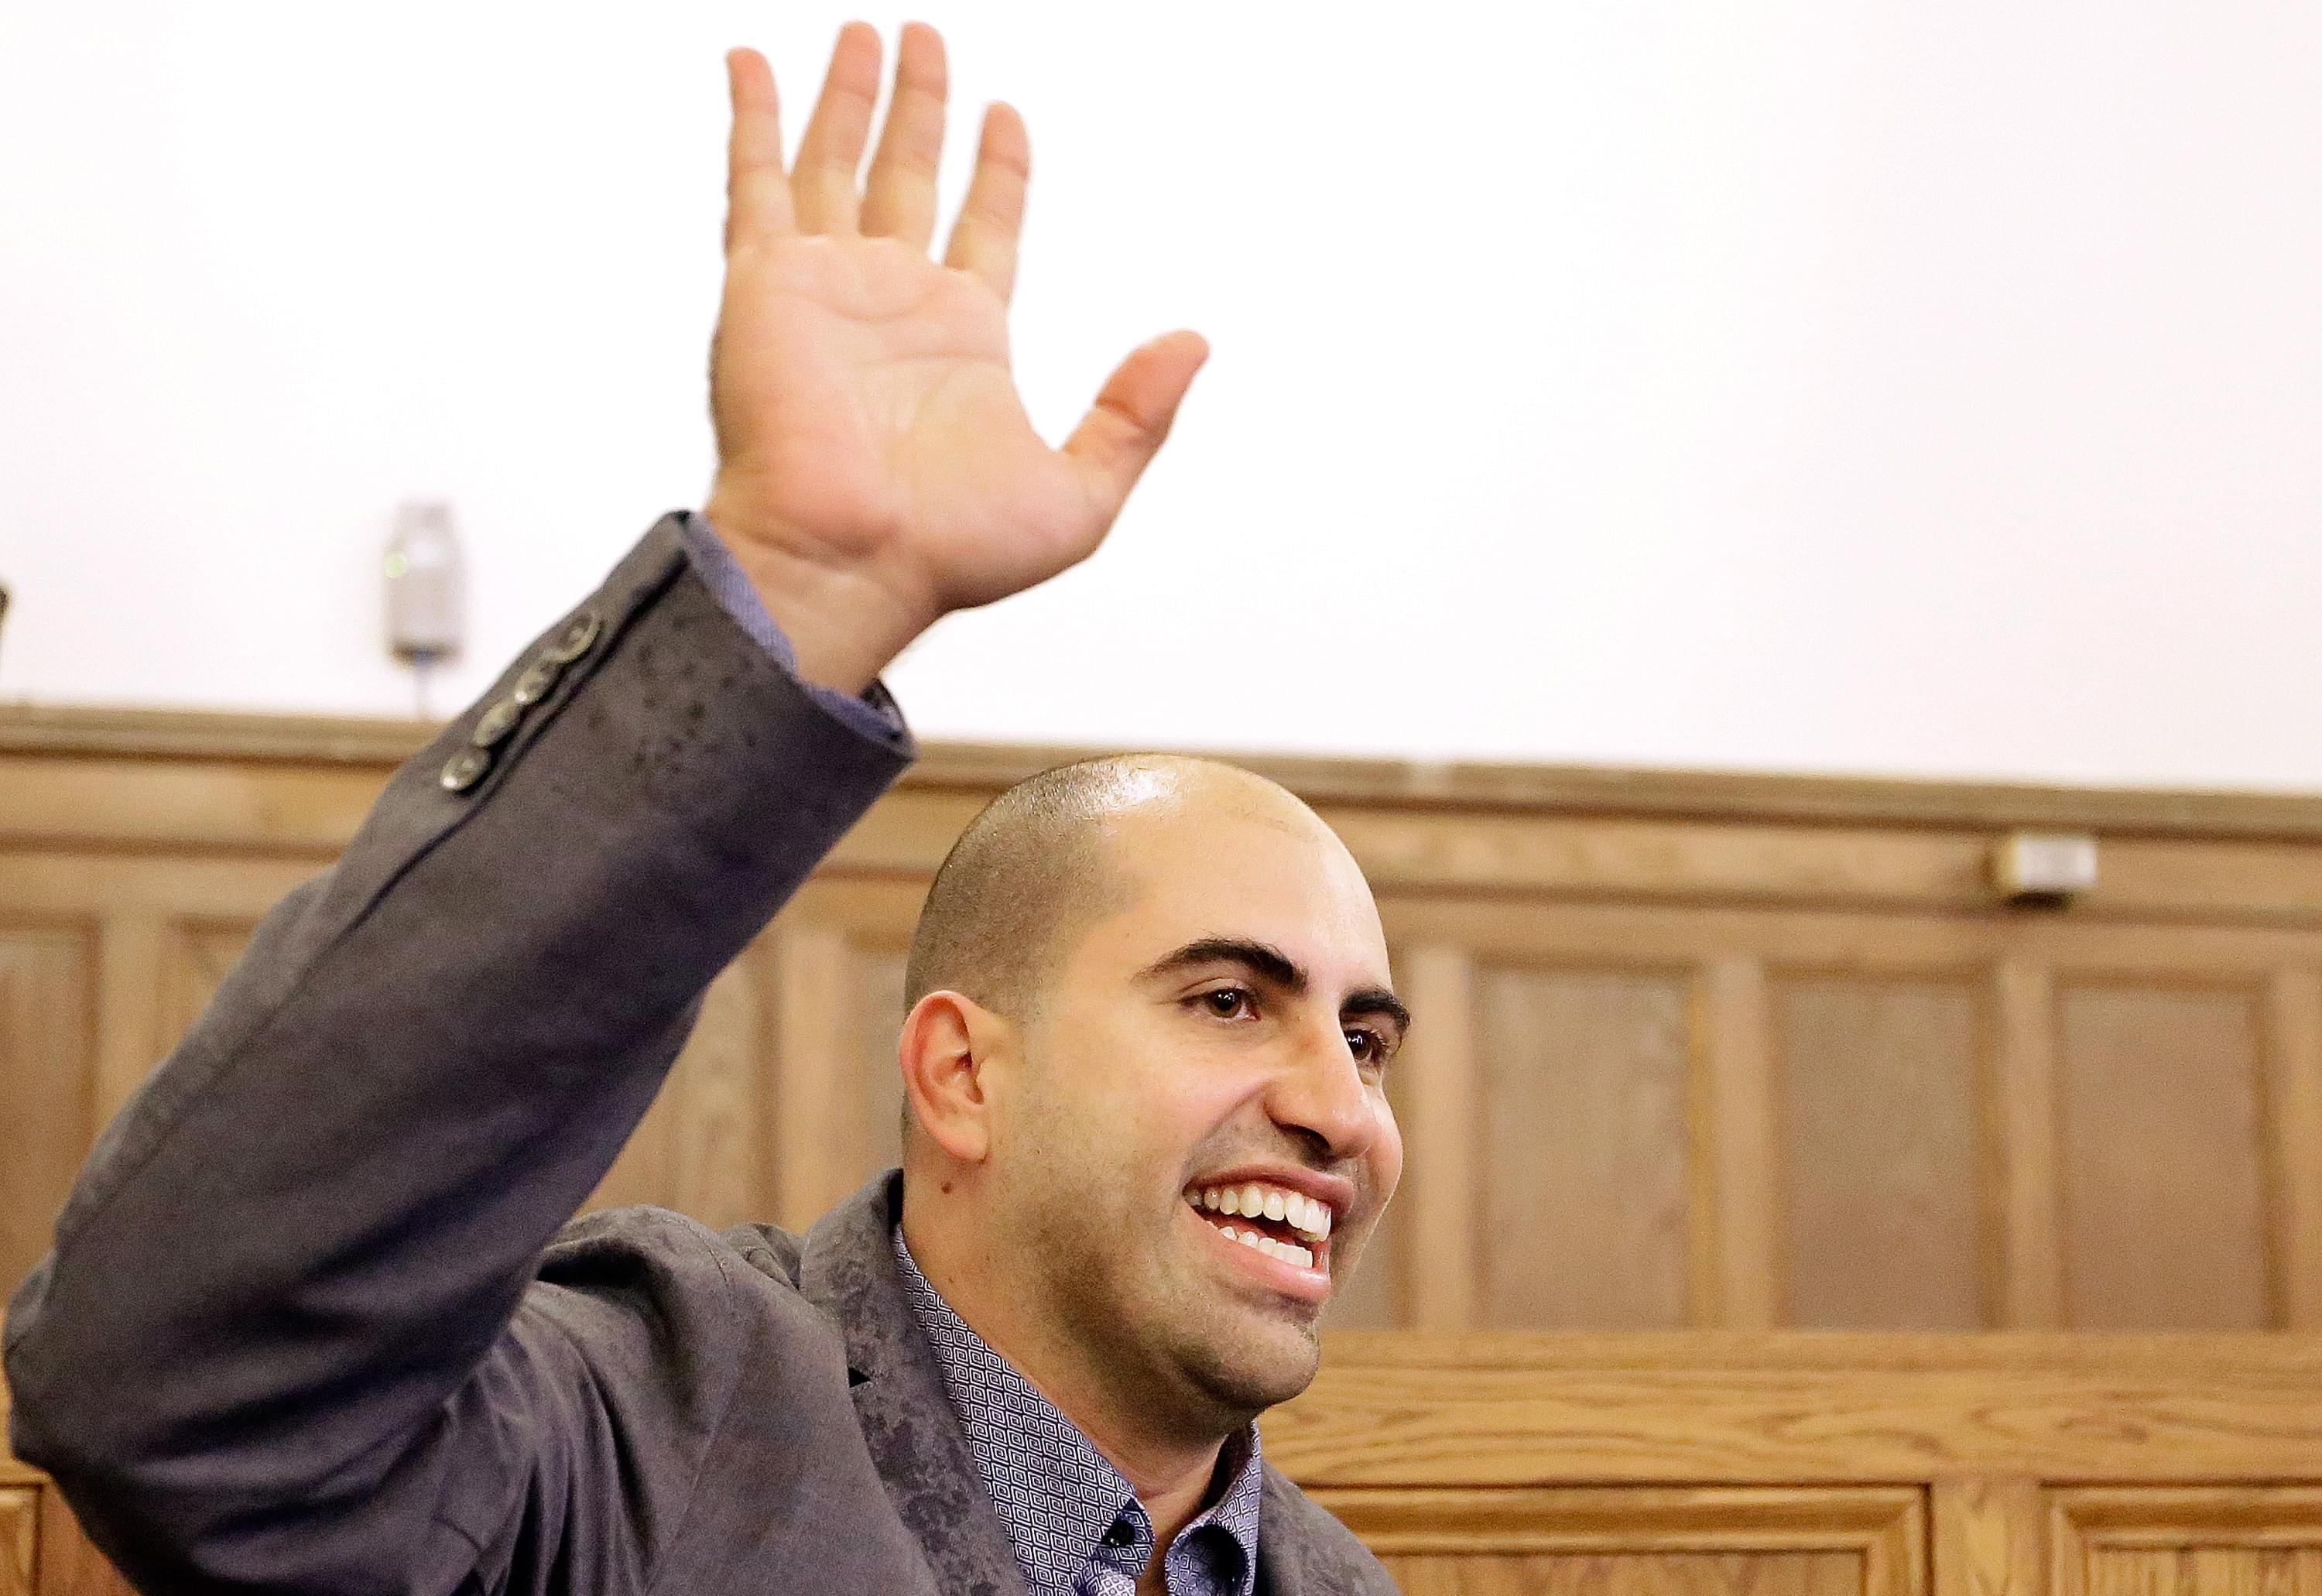 Steve Salaita, who lost a job offer from the University of Illinois over dozens of profane Twitter messages that critics deemed anti-Semitic, speaks to students and reporters during a news conference at the University of Illinois last September.